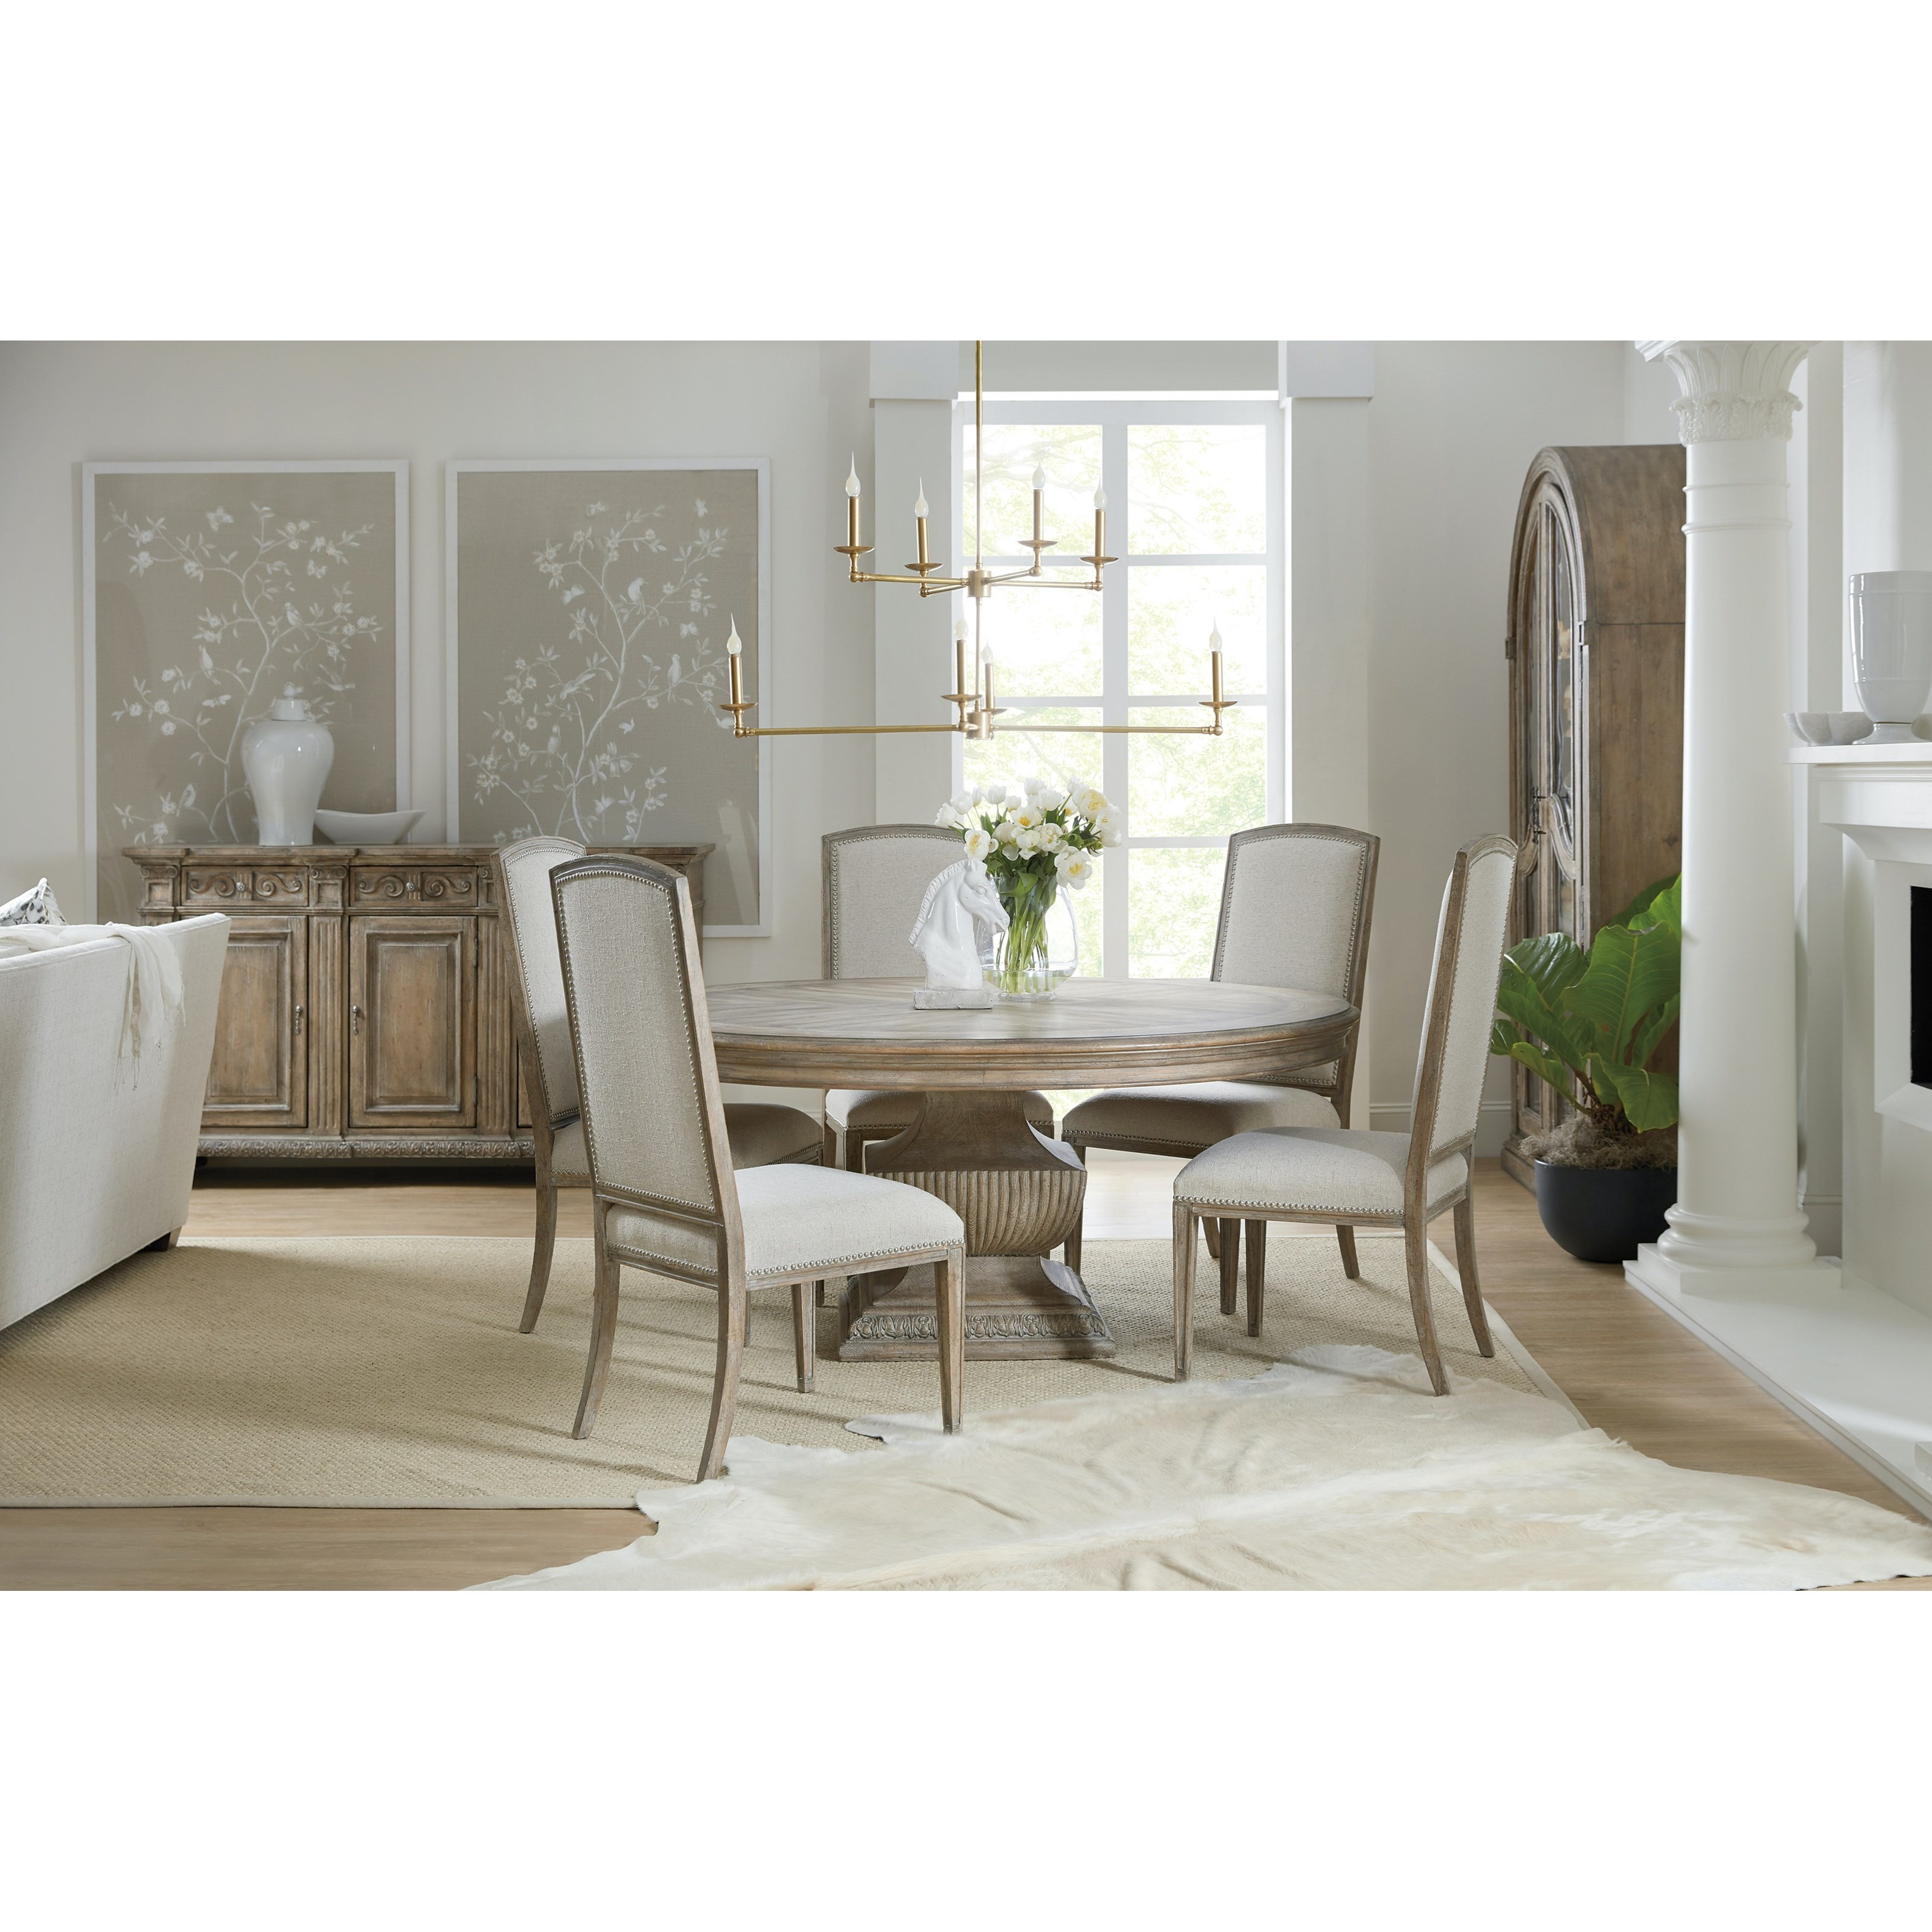 Castella Formal Dining Room Group by Hooker Furniture at Alison Craig Home Furnishings